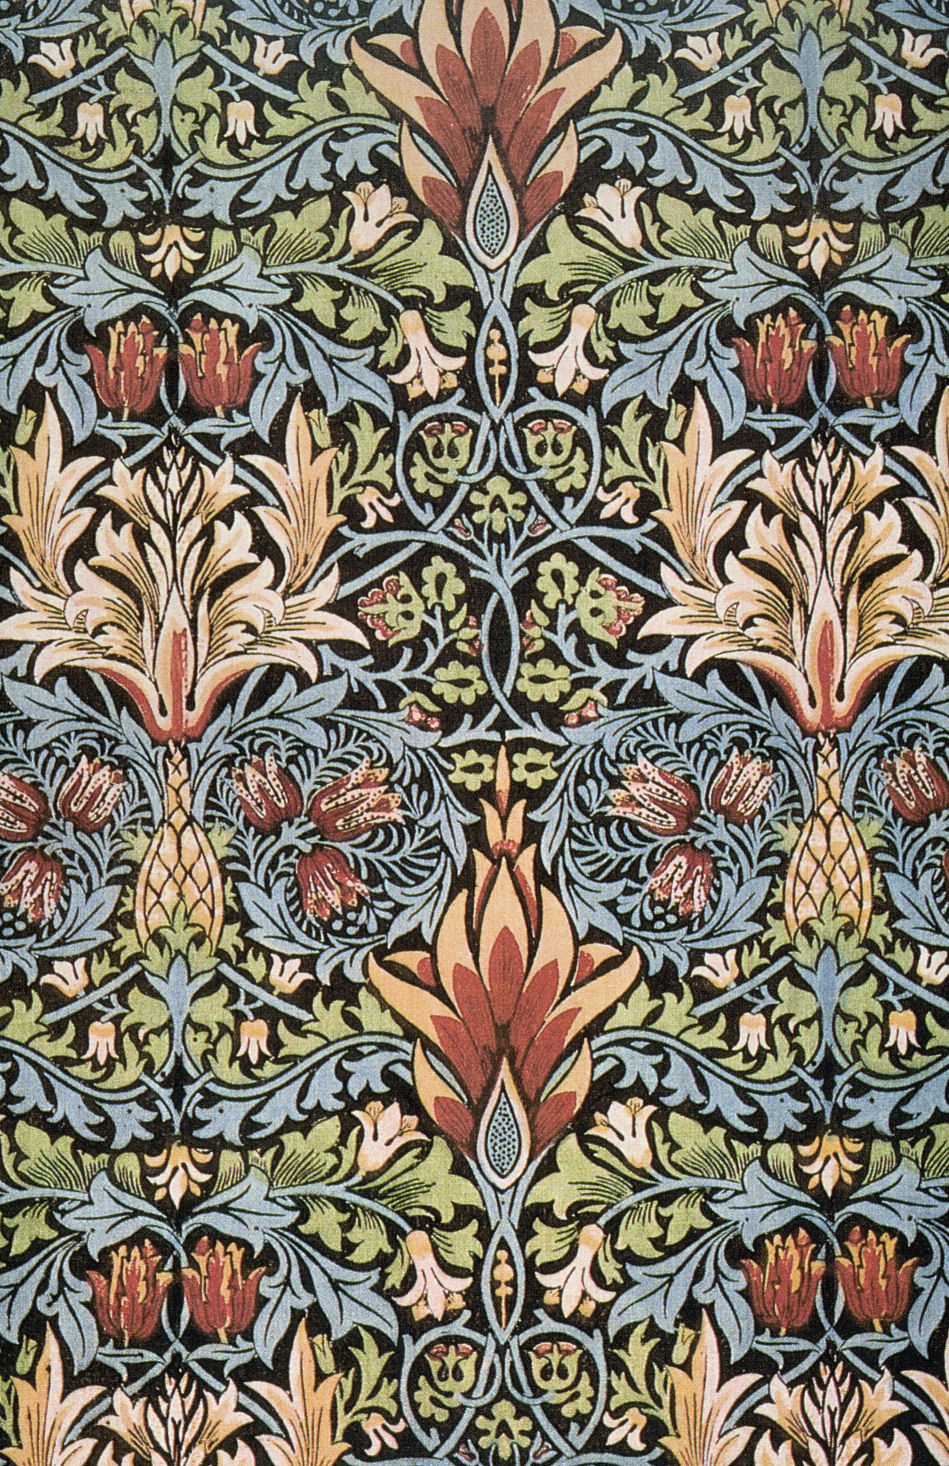 snakeshead printed textile 1876 william morris. Black Bedroom Furniture Sets. Home Design Ideas